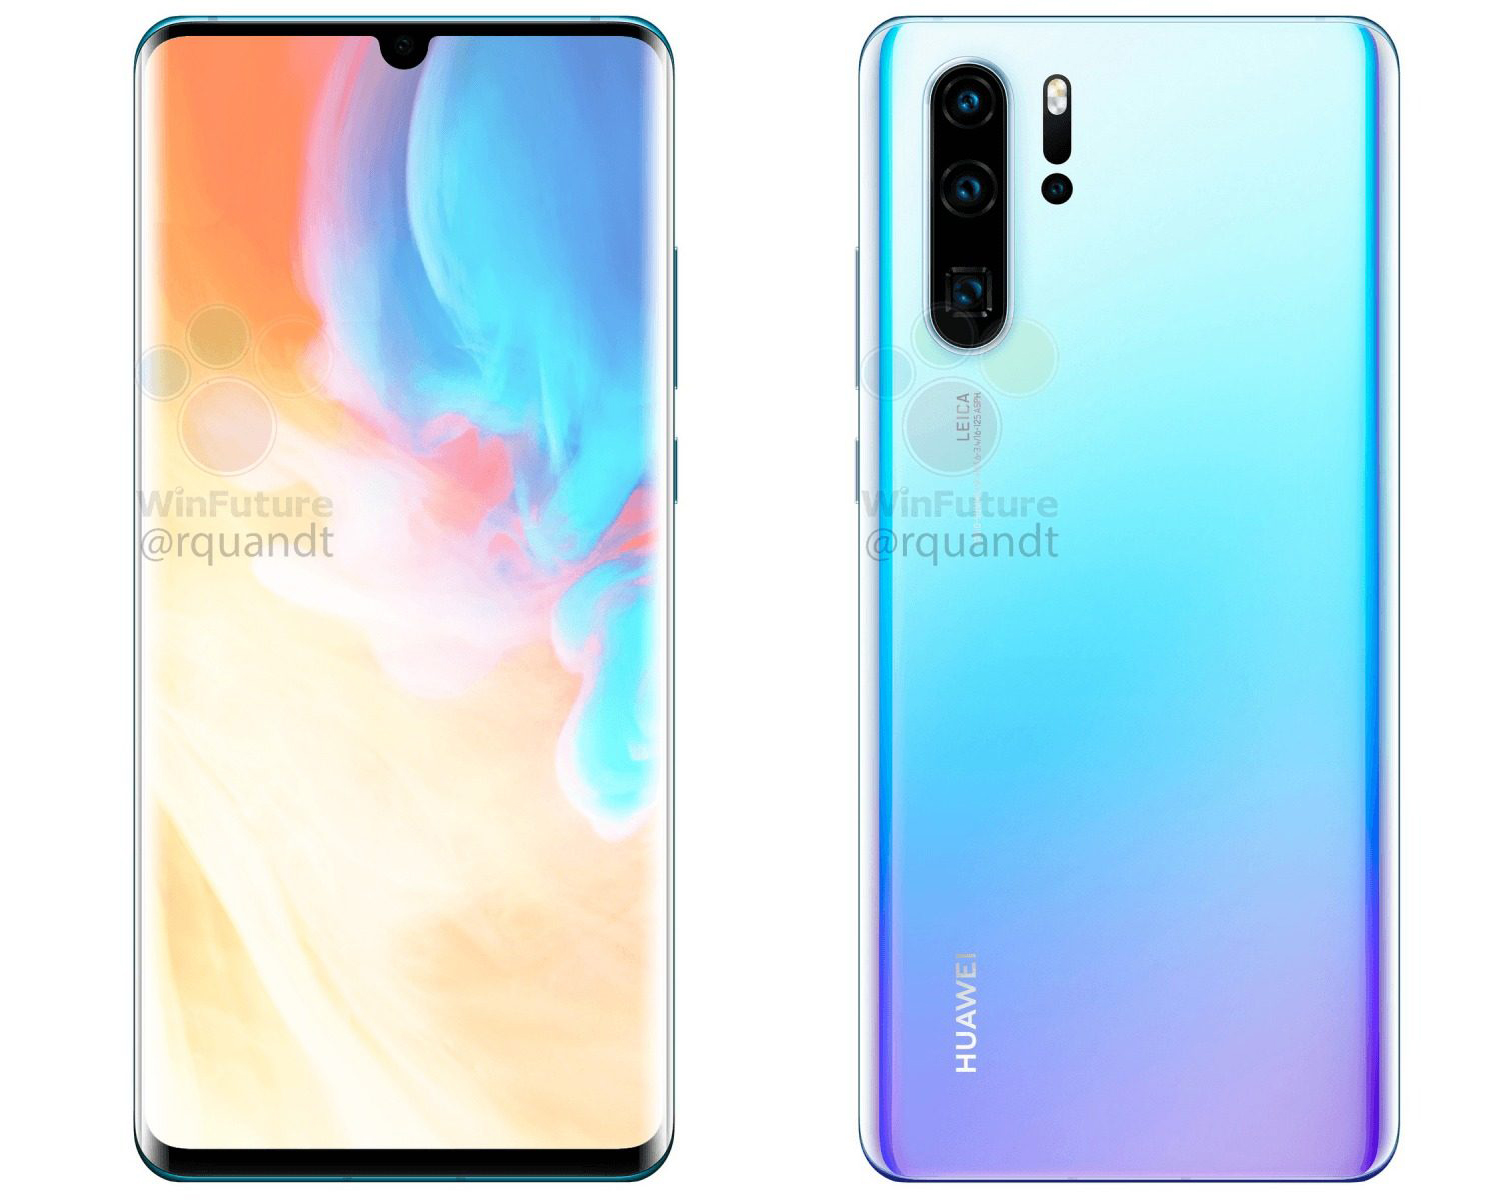 Huawei P30 Pro imagine camera tripla